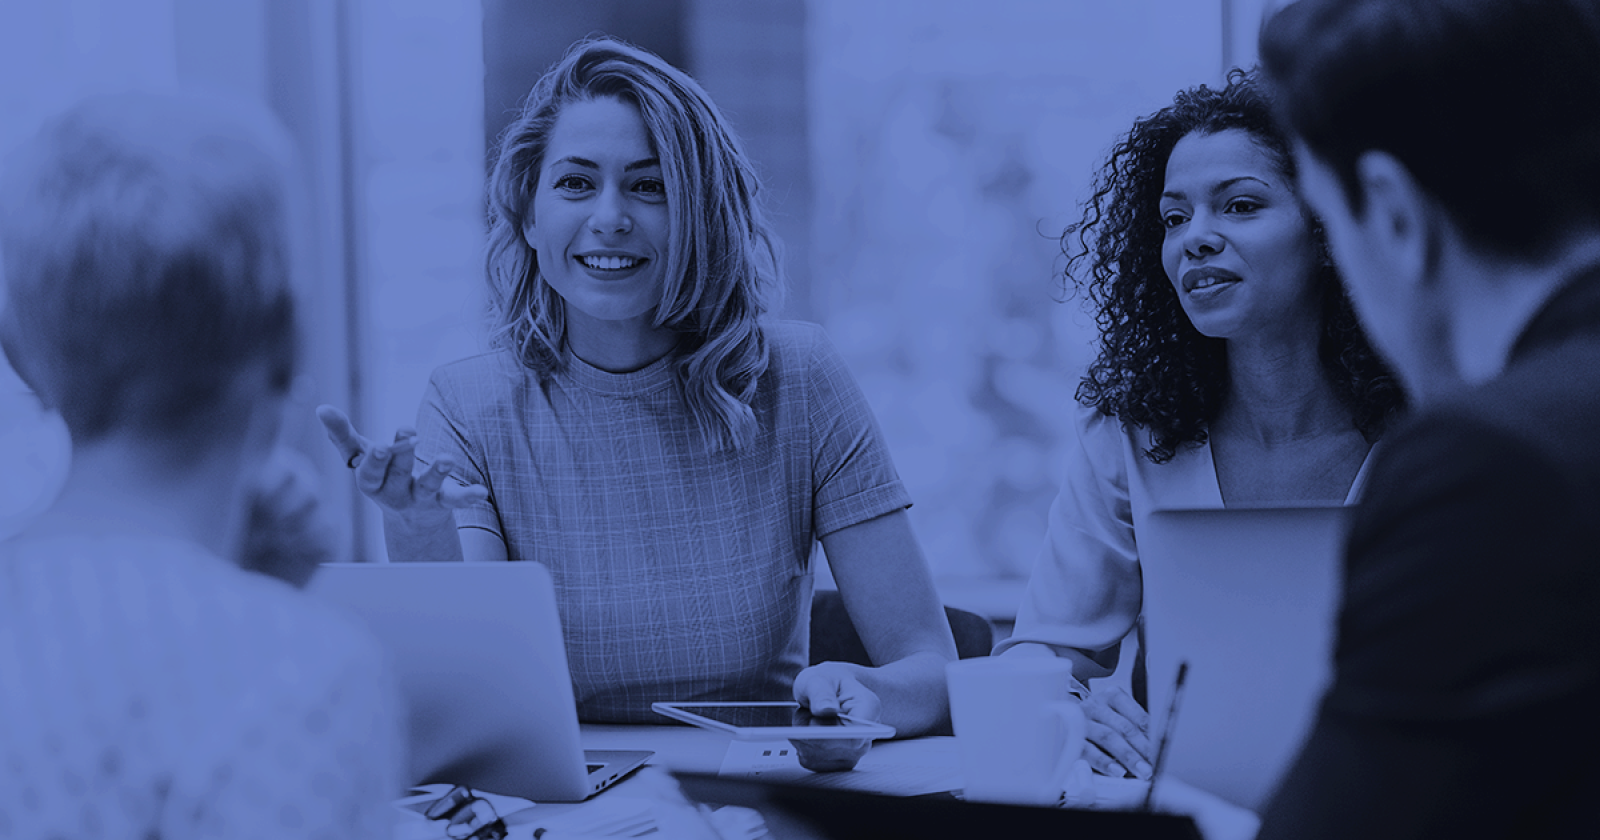 5 Ways Your Company Can Encourage More Women into Tech